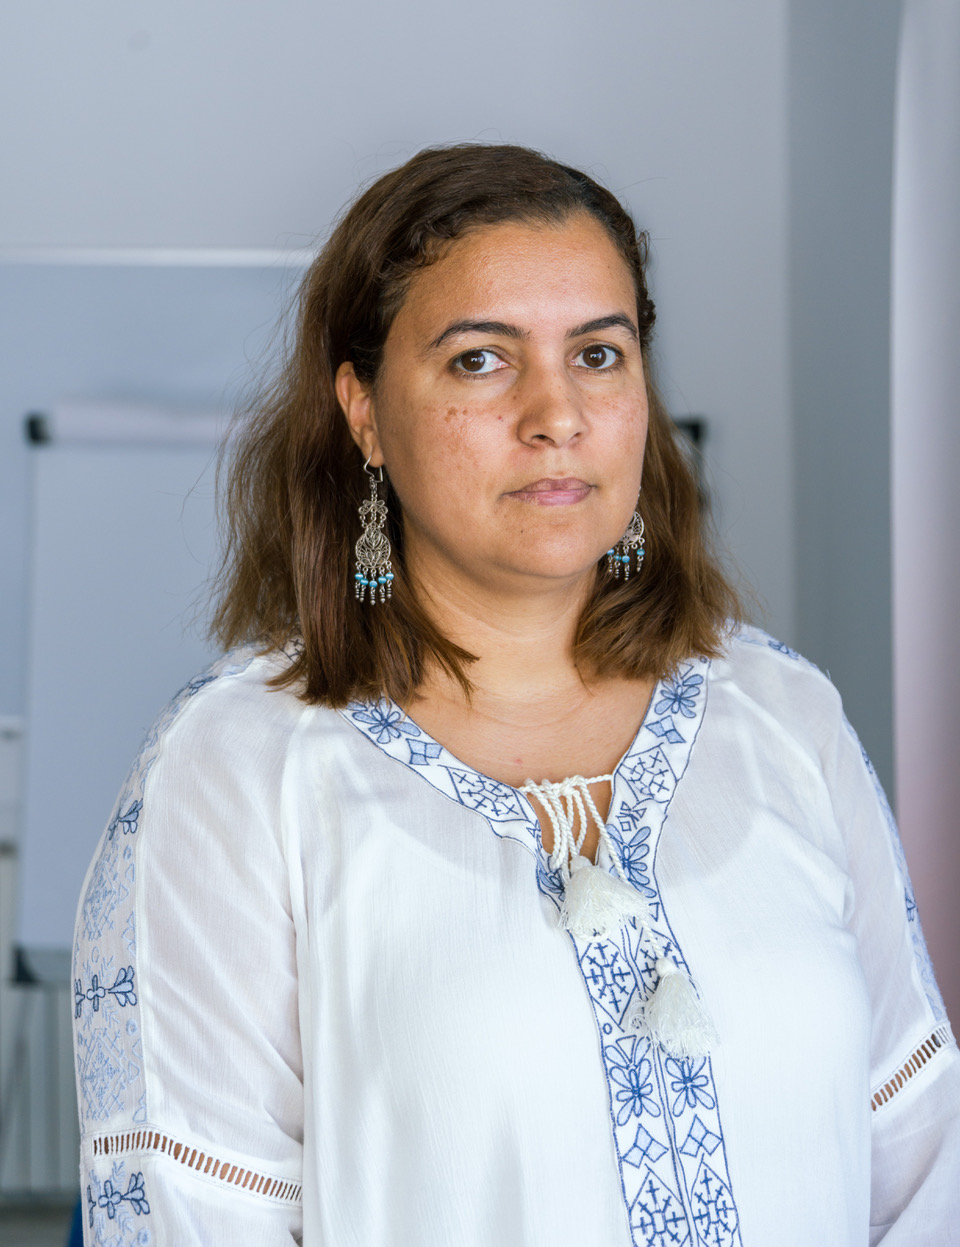 Salwa El Gantri is the head of the Tunisian office of the International Center for Transitional Justice